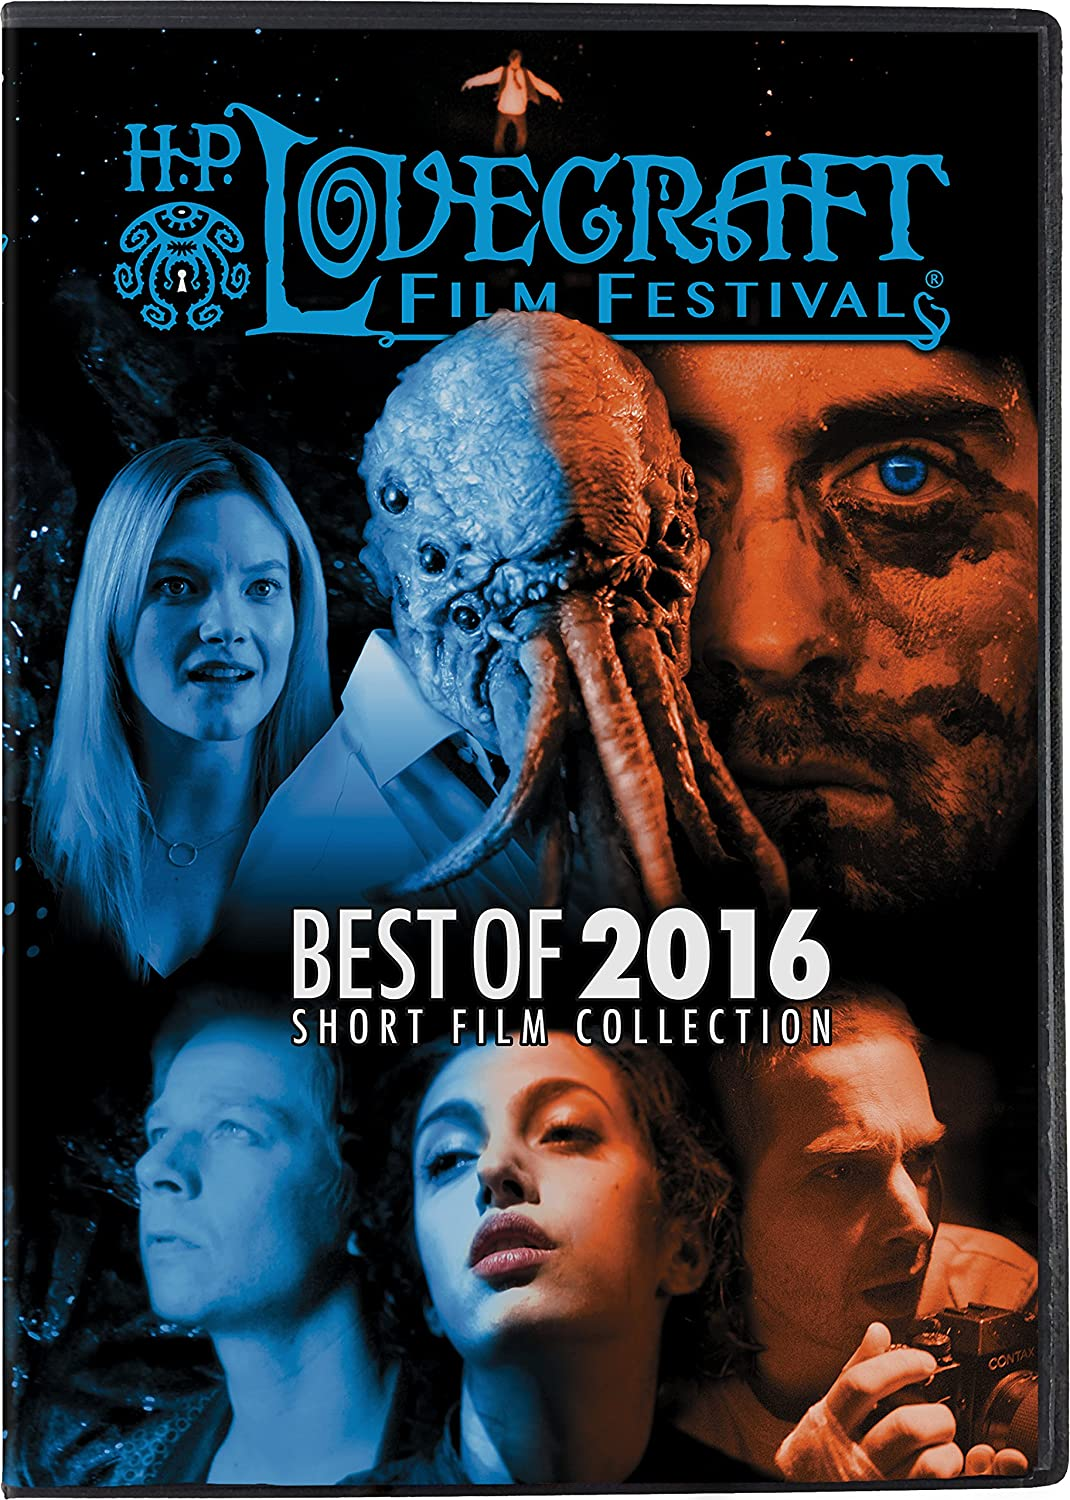 H. P. Lovecraft Film Festival Best of 2016 Collection